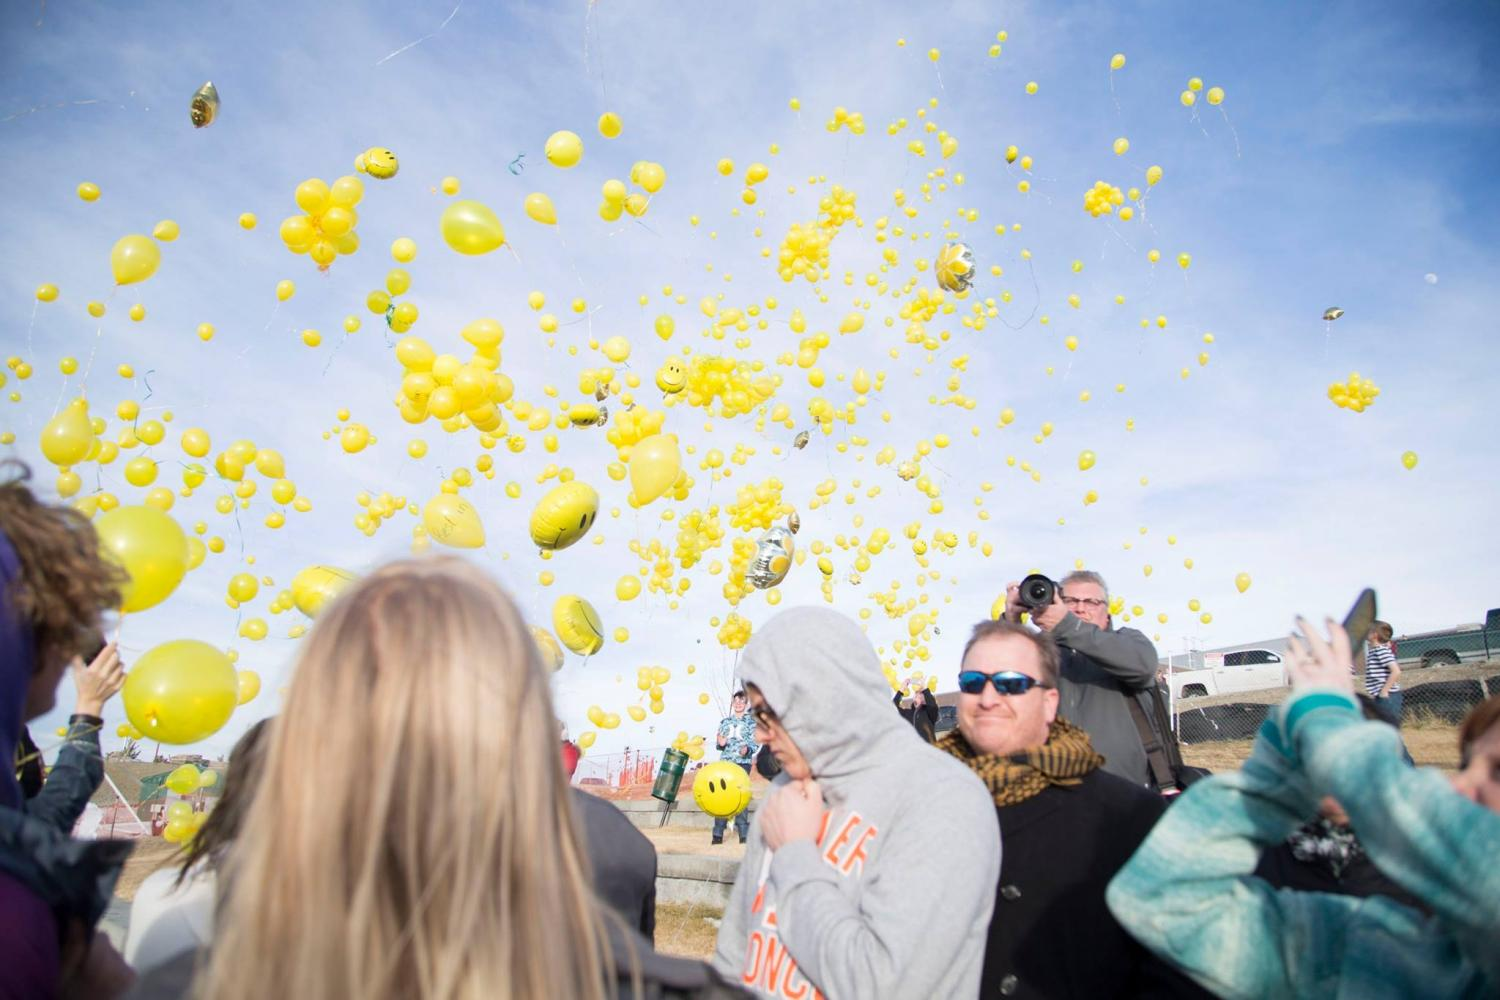 Balloons+are+released+in+the+air+to+honor+Aurora+Rohrer%2C+a+KW+student+who+was+killed+in+a+car+accident+in+February.++Kelly+Walsh+felt+the+loss+deeply+and+pulled+together+to+get+everyone+through+it.